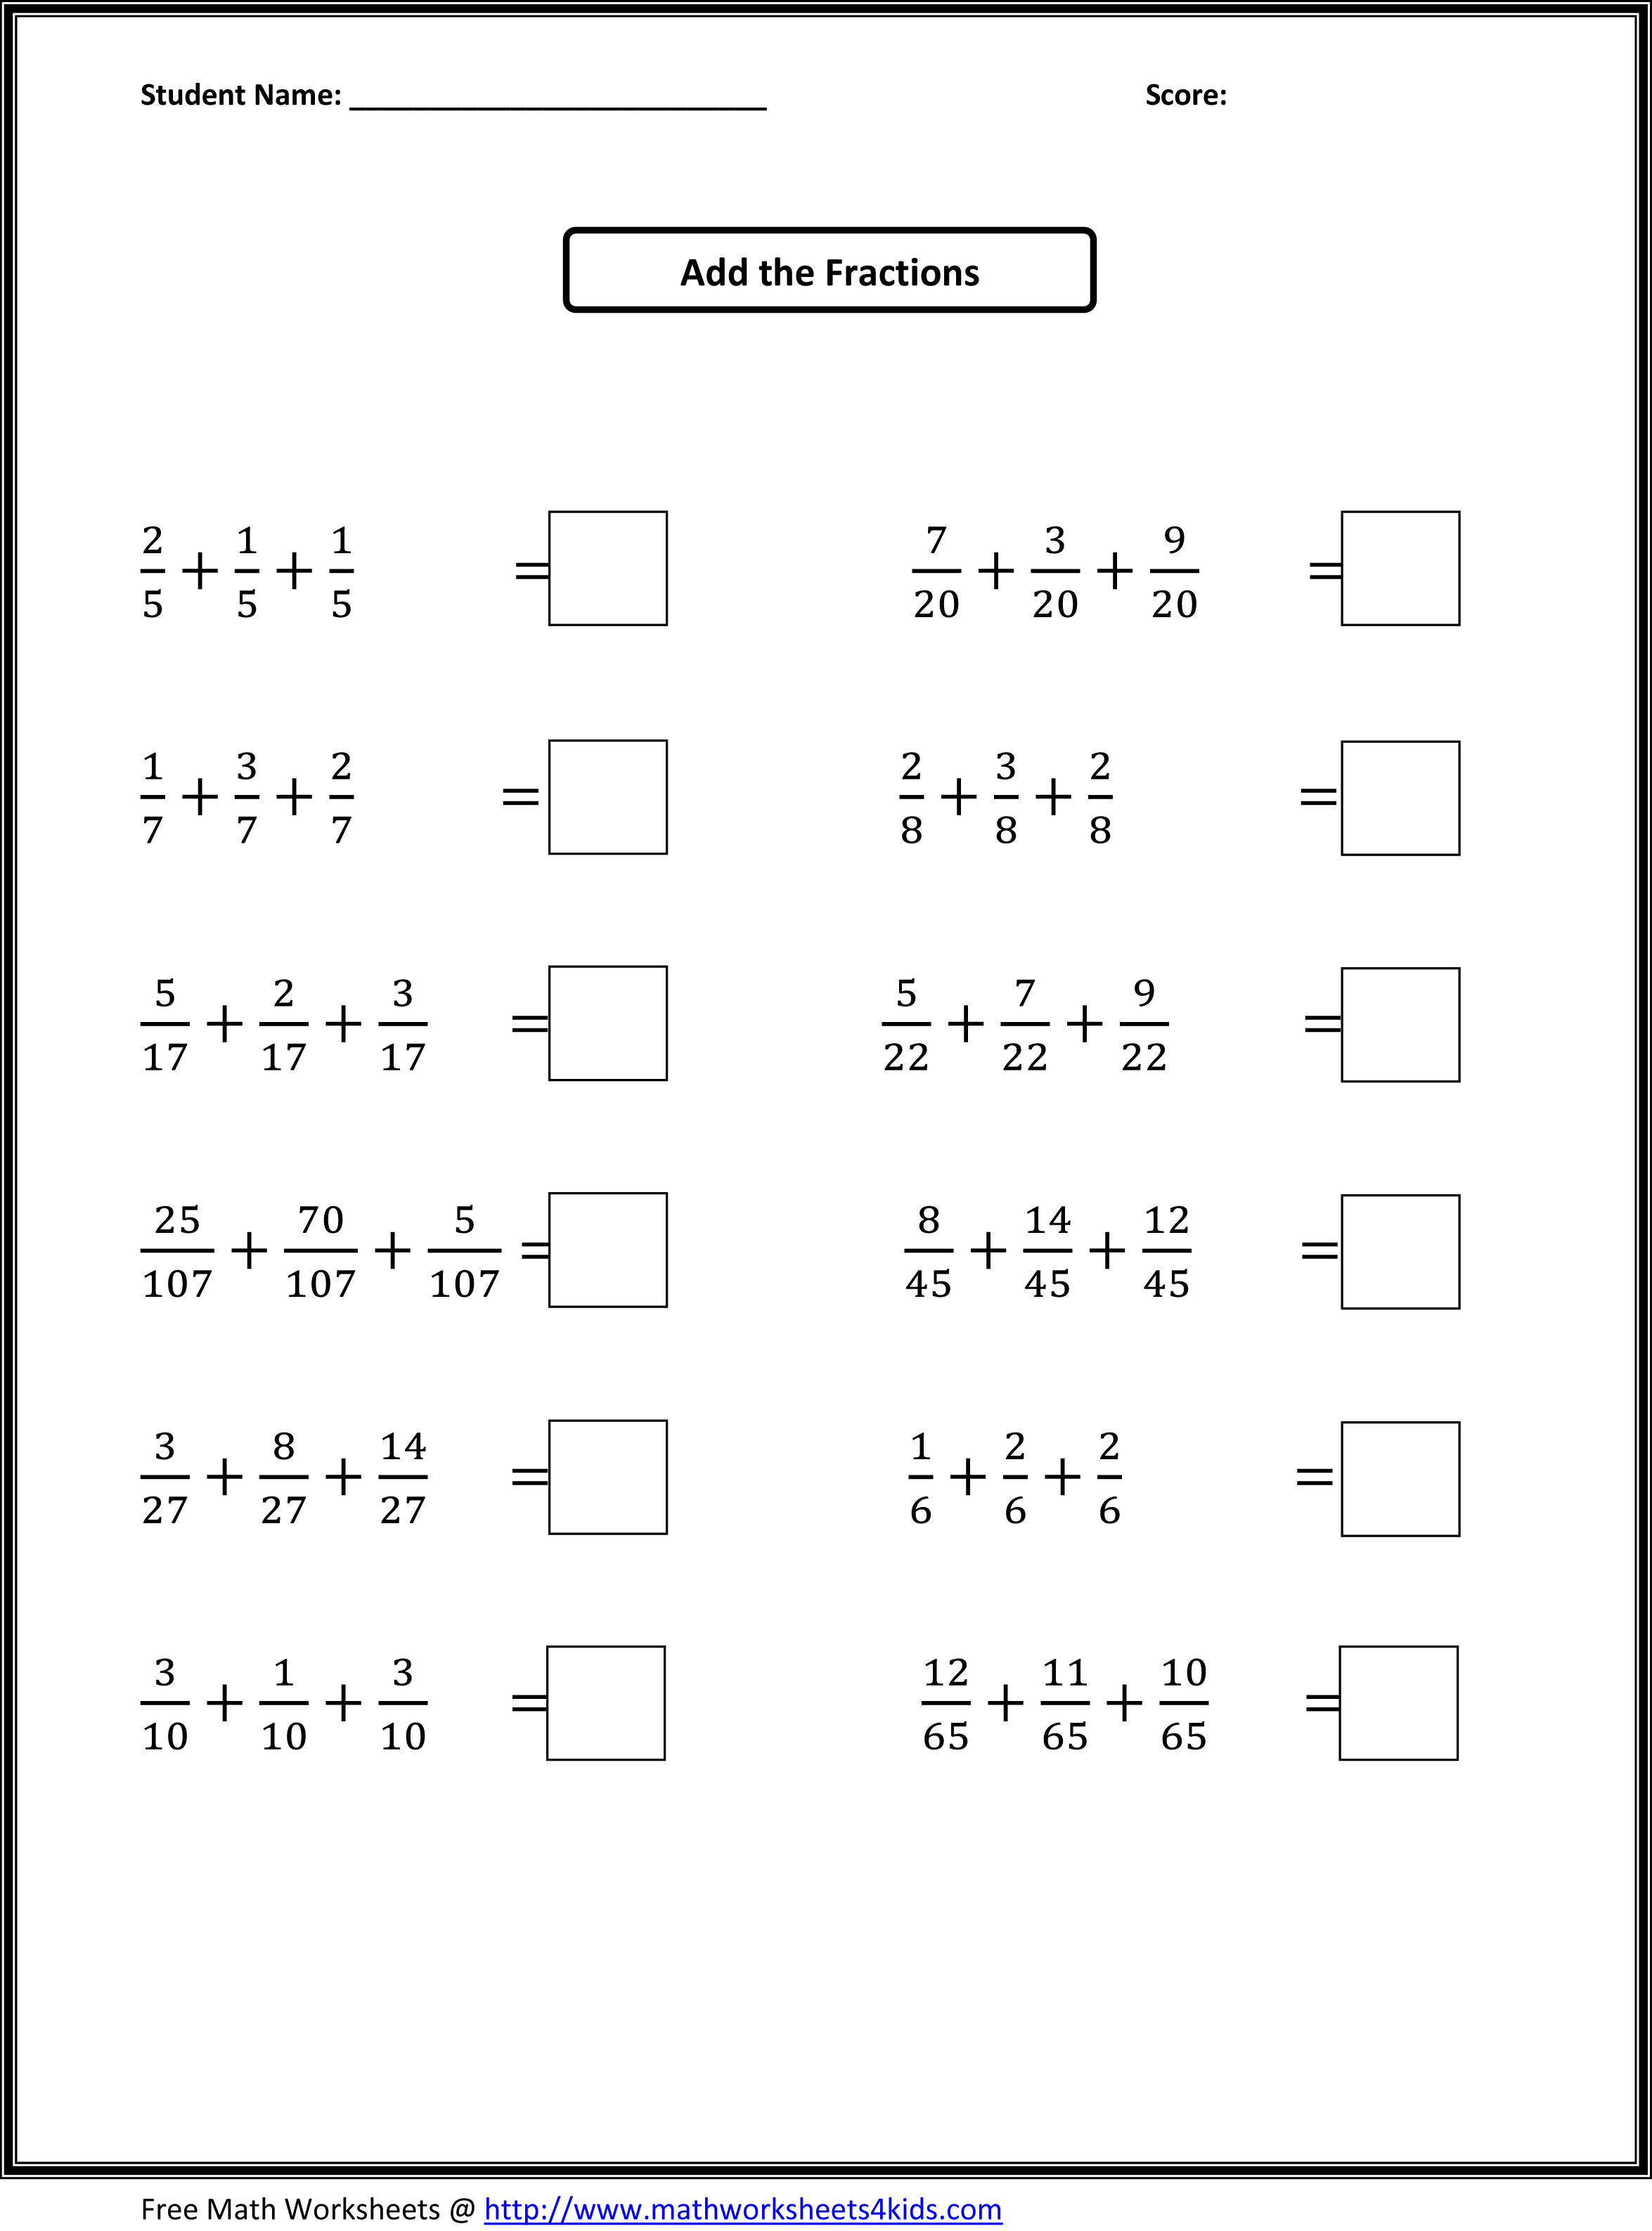 math worksheet : fraction worksheets 4th grade  kids activities : Fraction Worksheets For Grade 3 Free